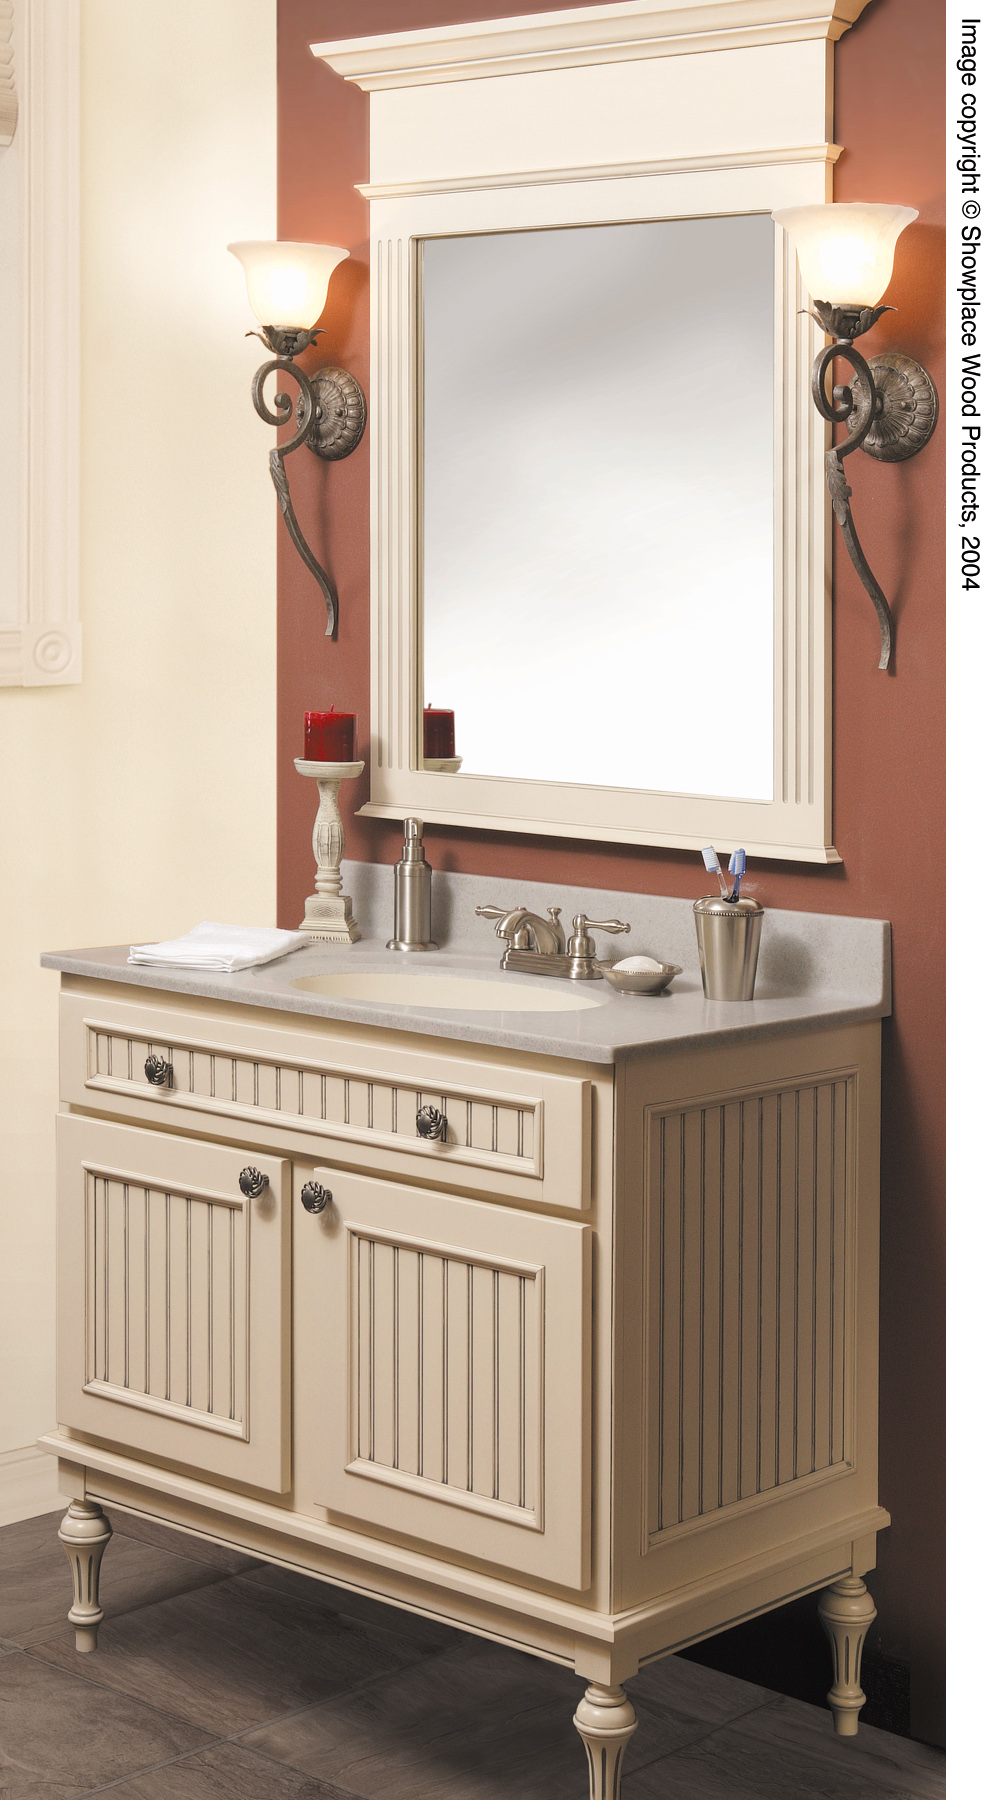 Vanity Cabinets La Crosse Wi The Board Store Home